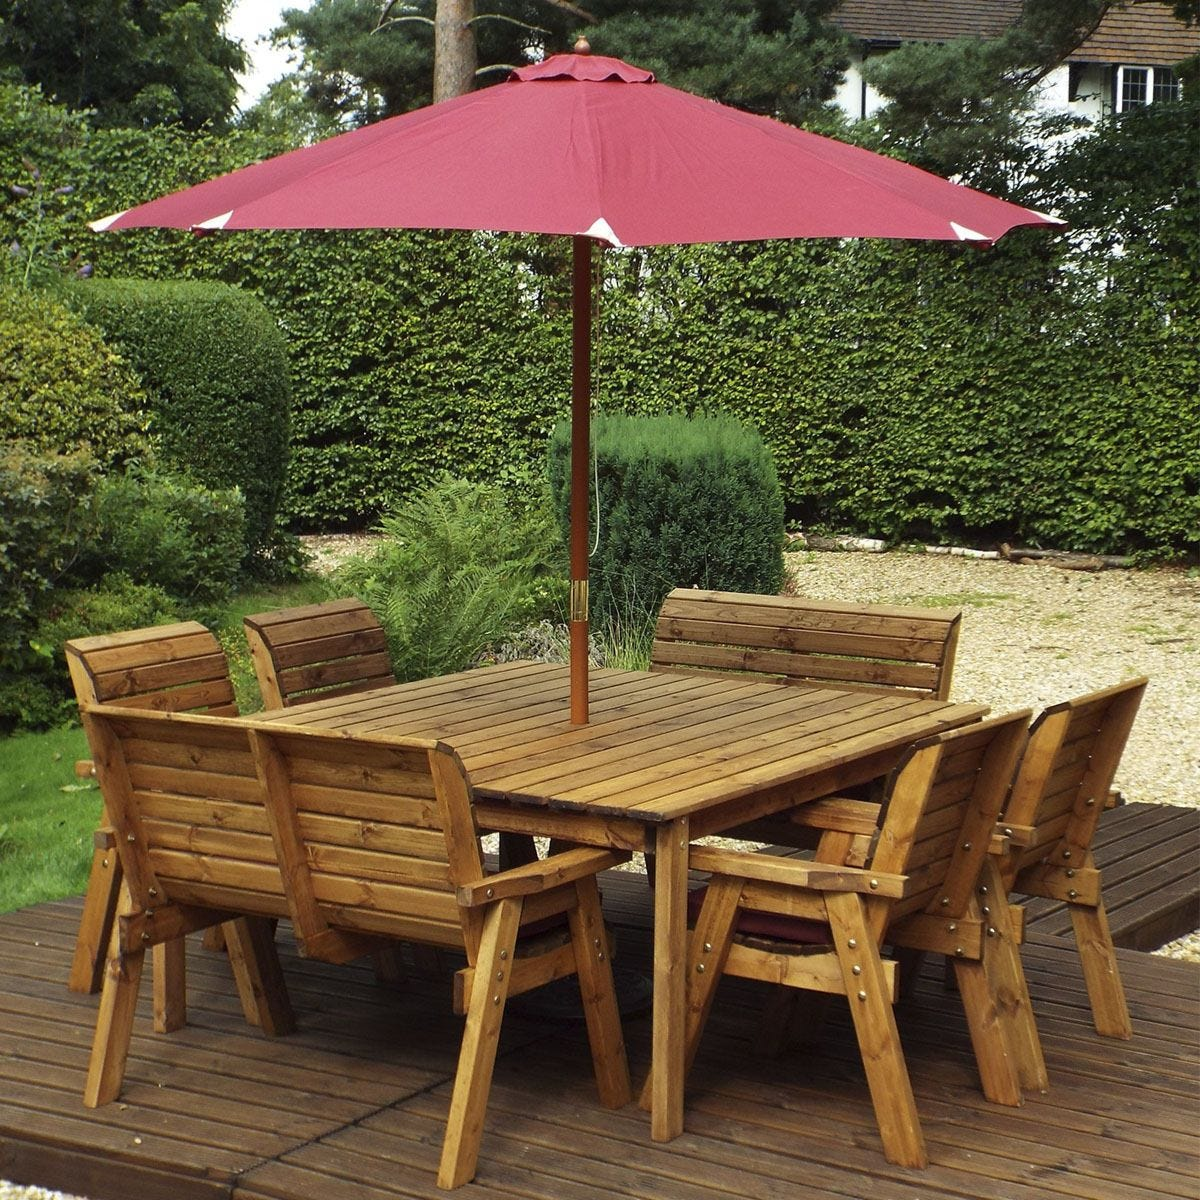 Charles Taylor 8 Seater Chair and Bench Square Table Set with Burgundy Cushions, Storage Bag, Parasol and Base